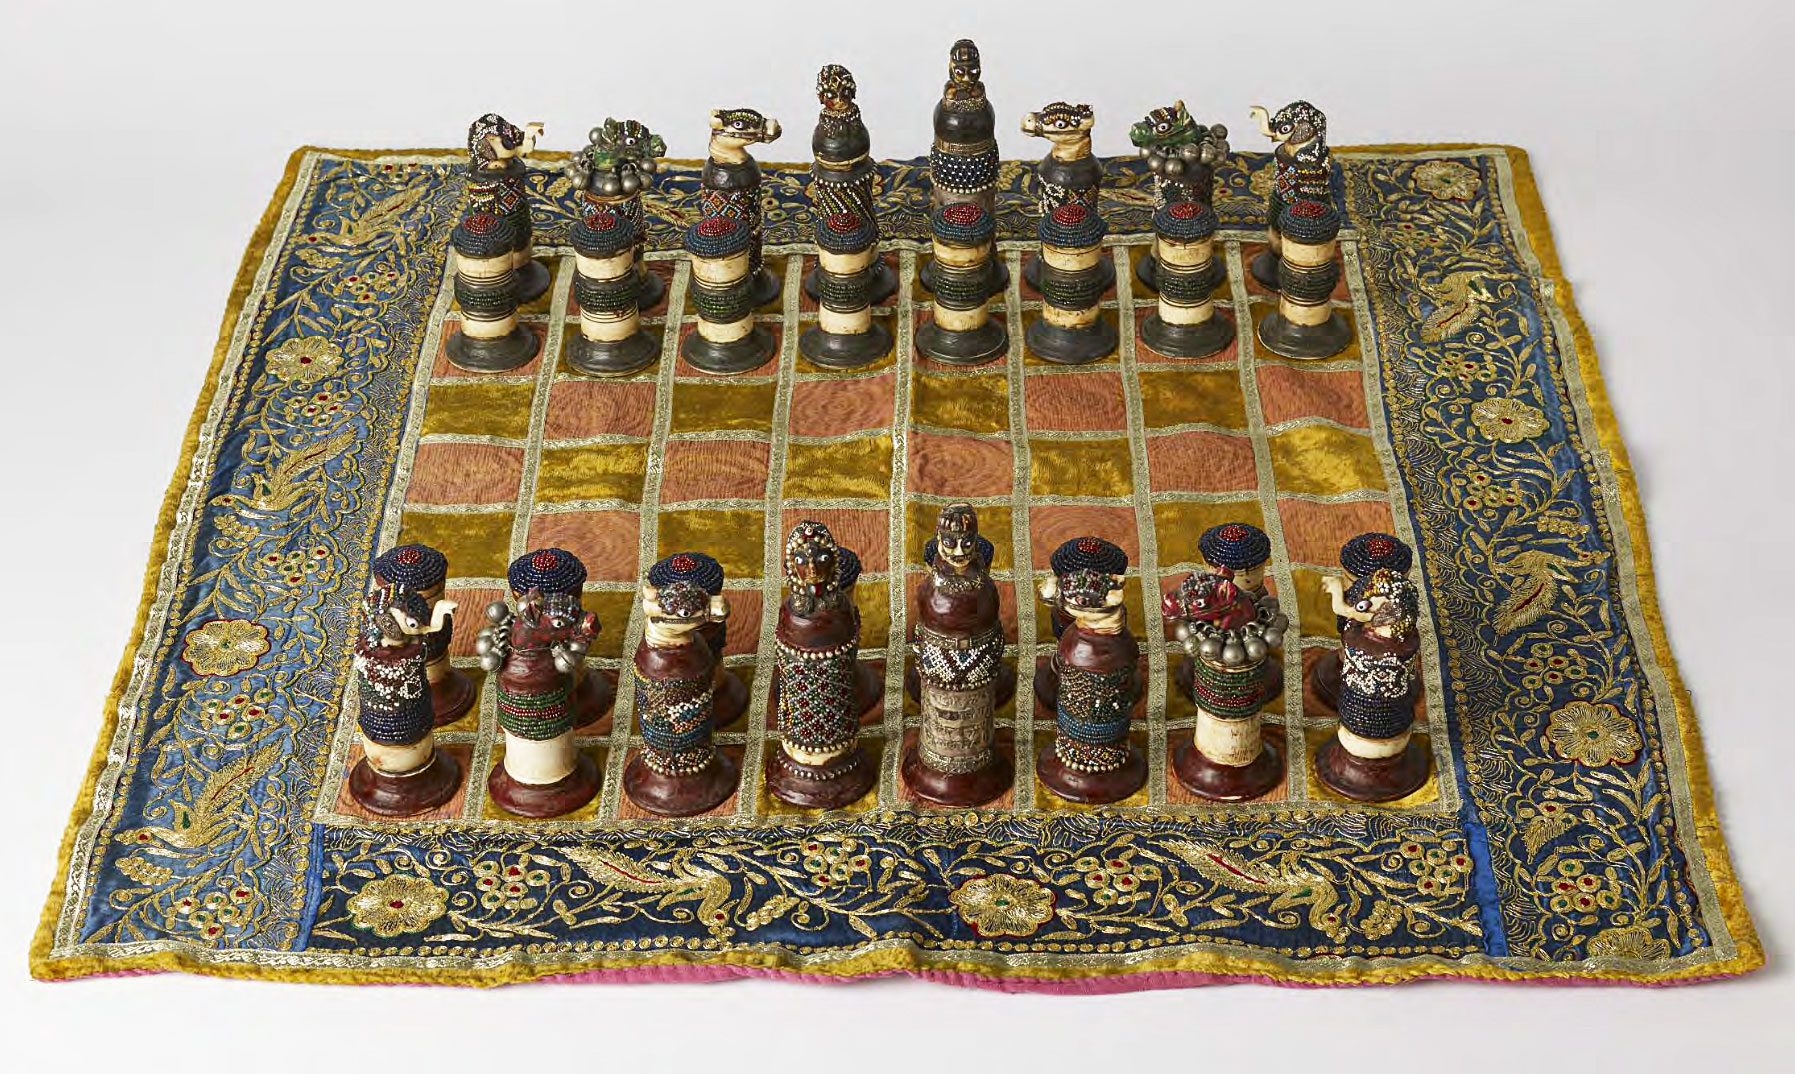 Collectors Chess Sets The Art Of War Exquisite Chess Sets Once Captured The